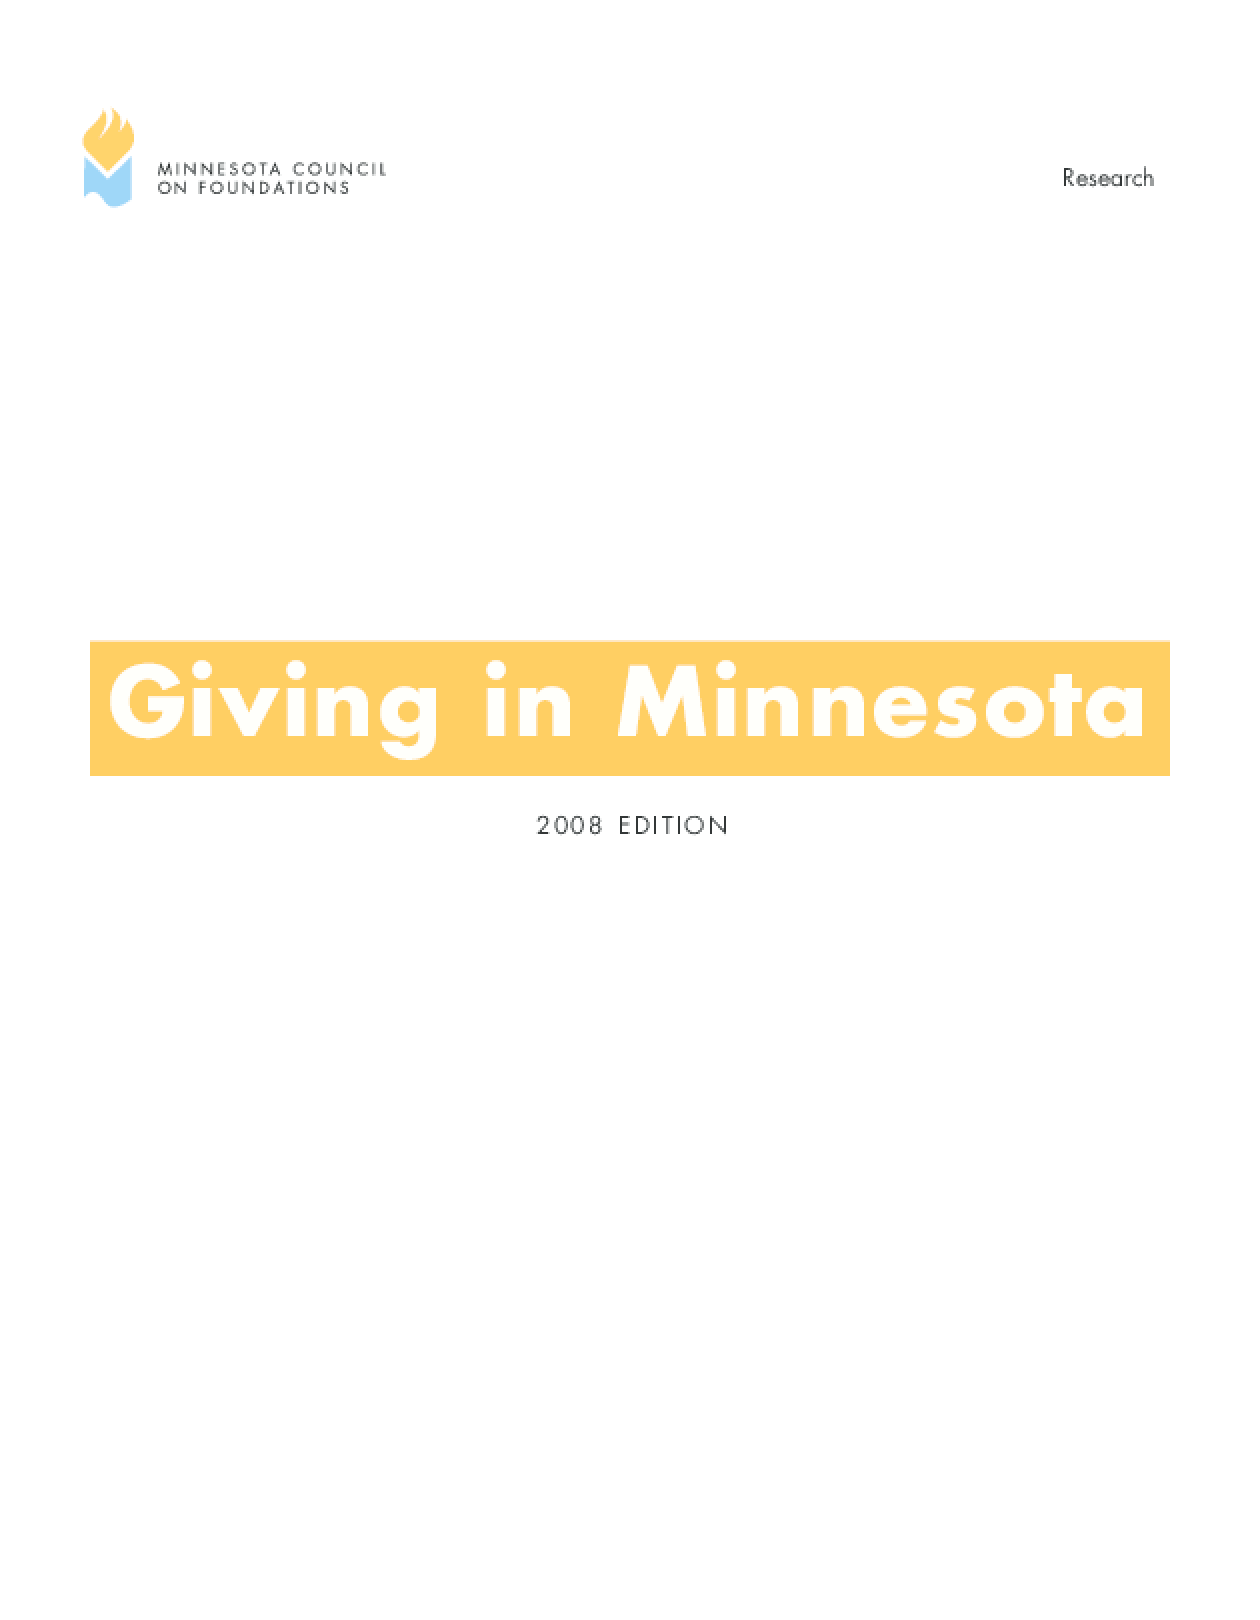 Giving in Minnesota, 2008 Edition